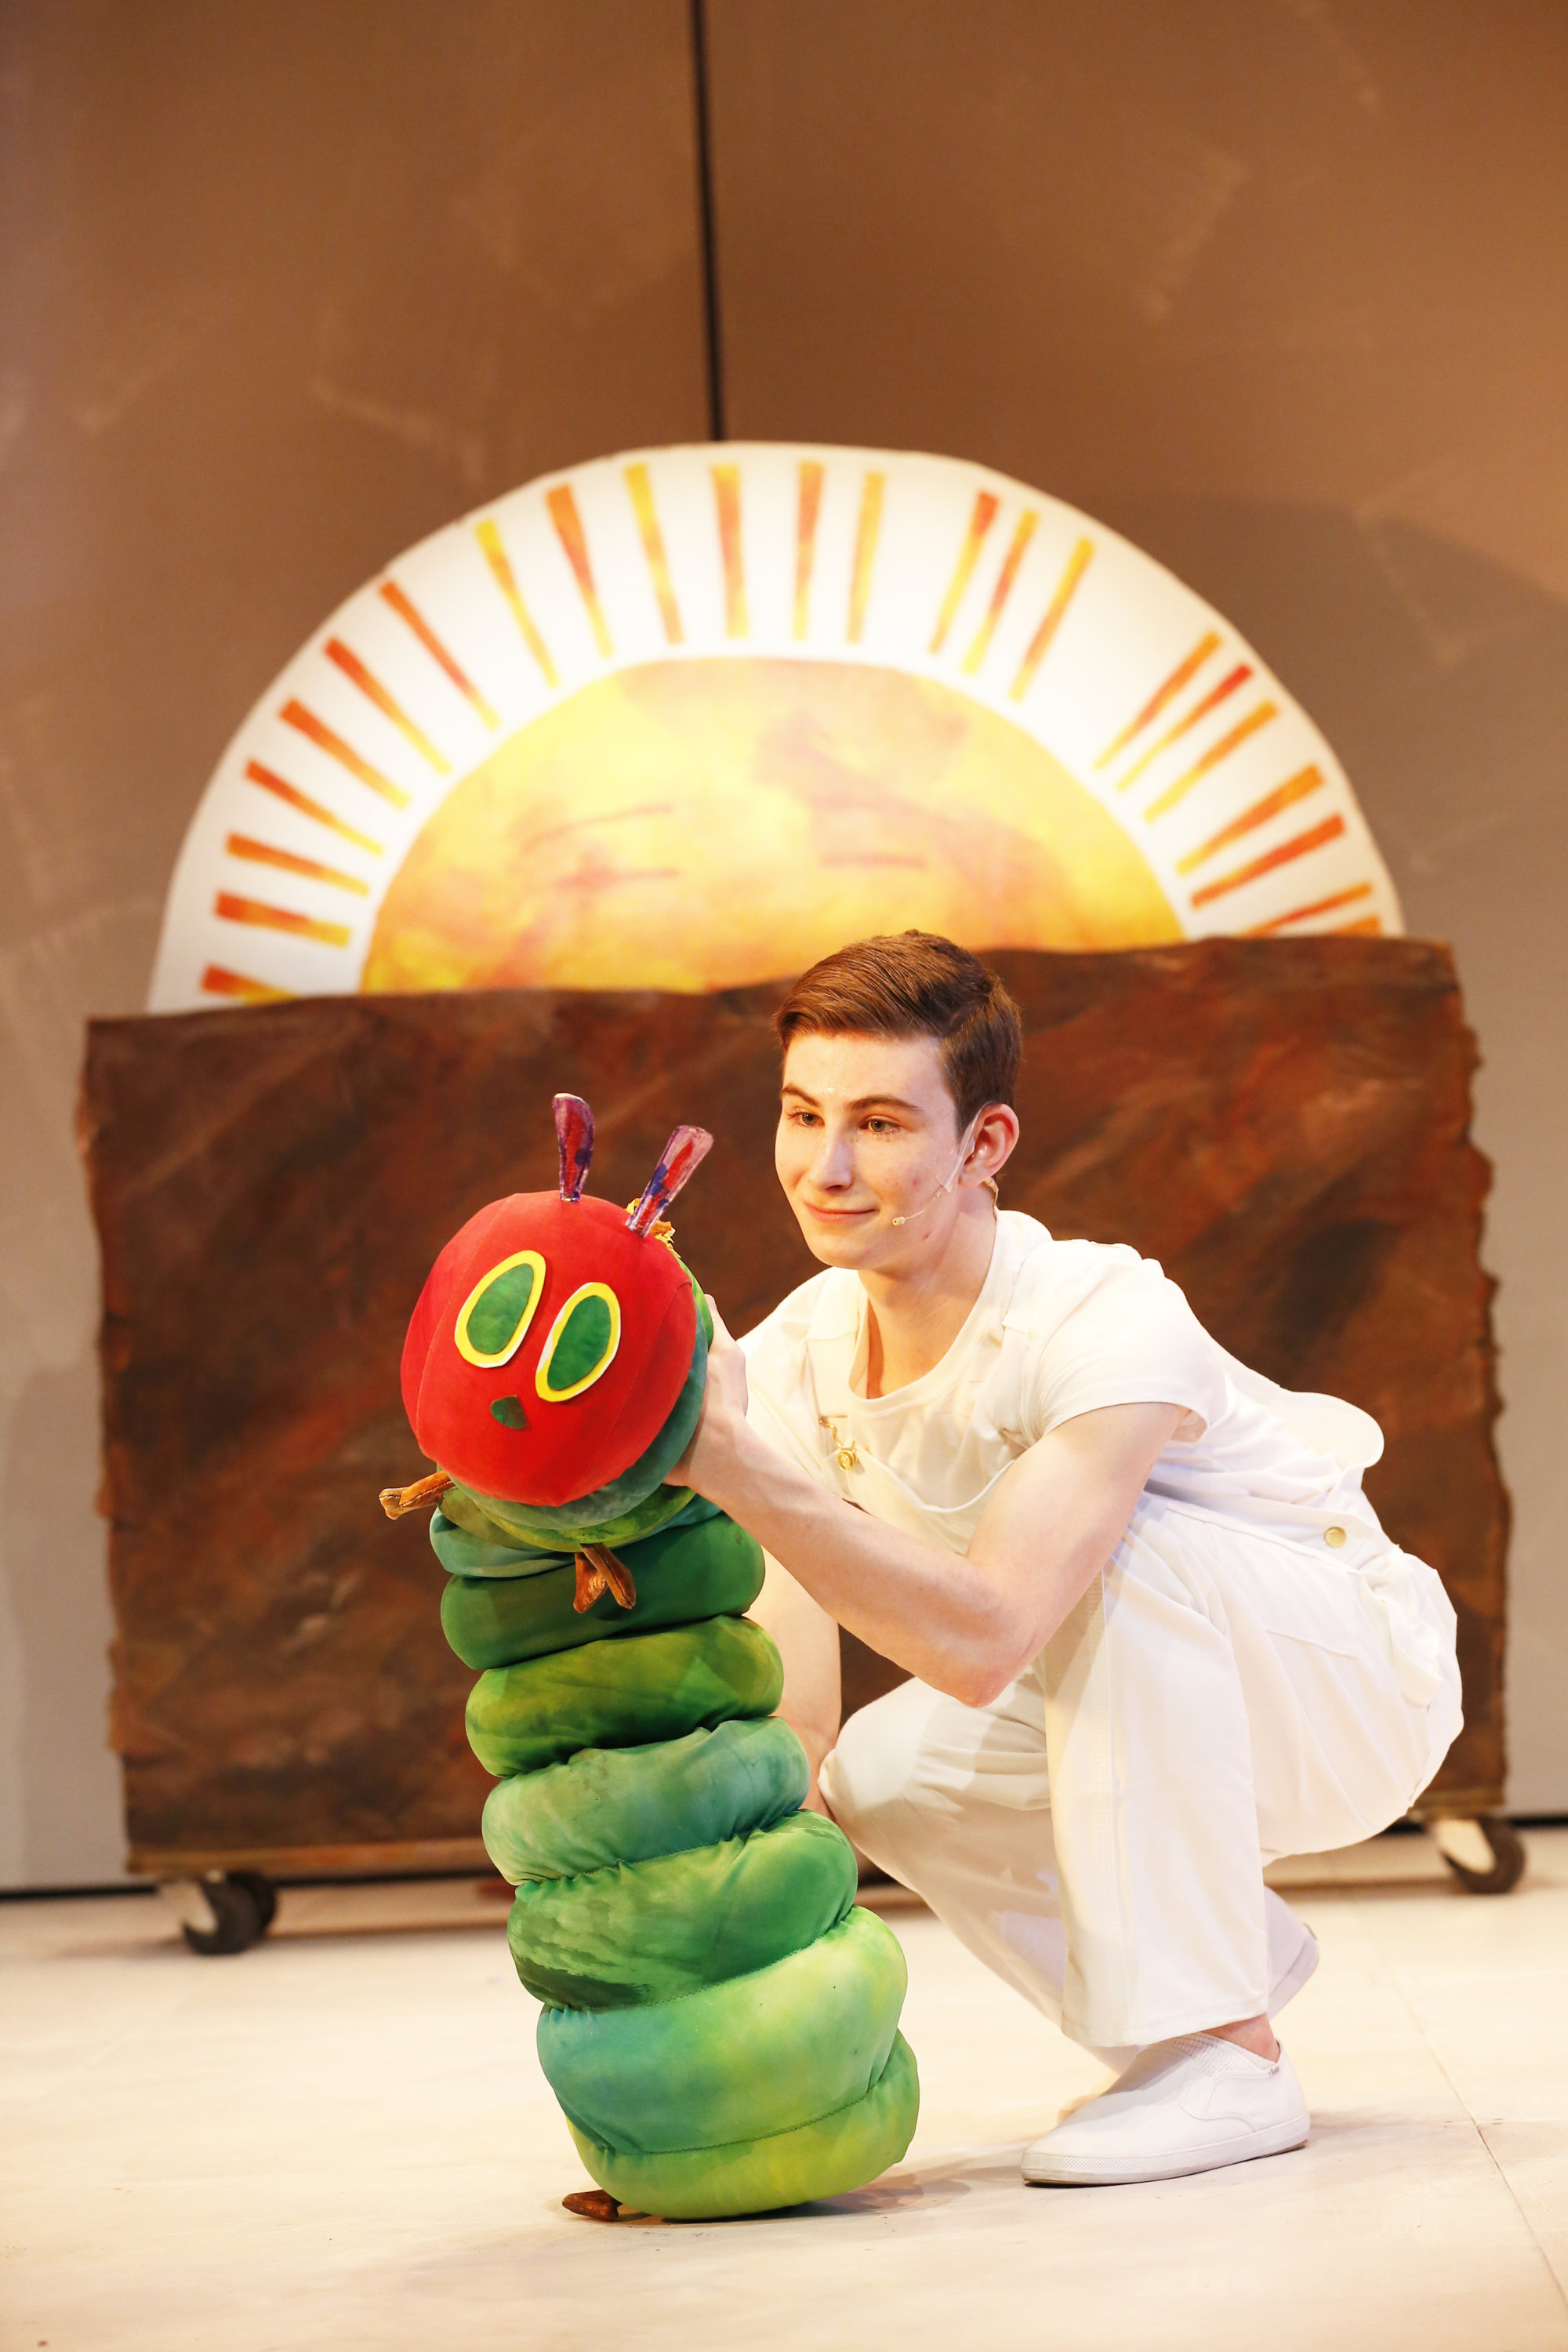 The Really Big Pix Collection Of Famous Mustaches: The Very Hungry Caterpillar Show